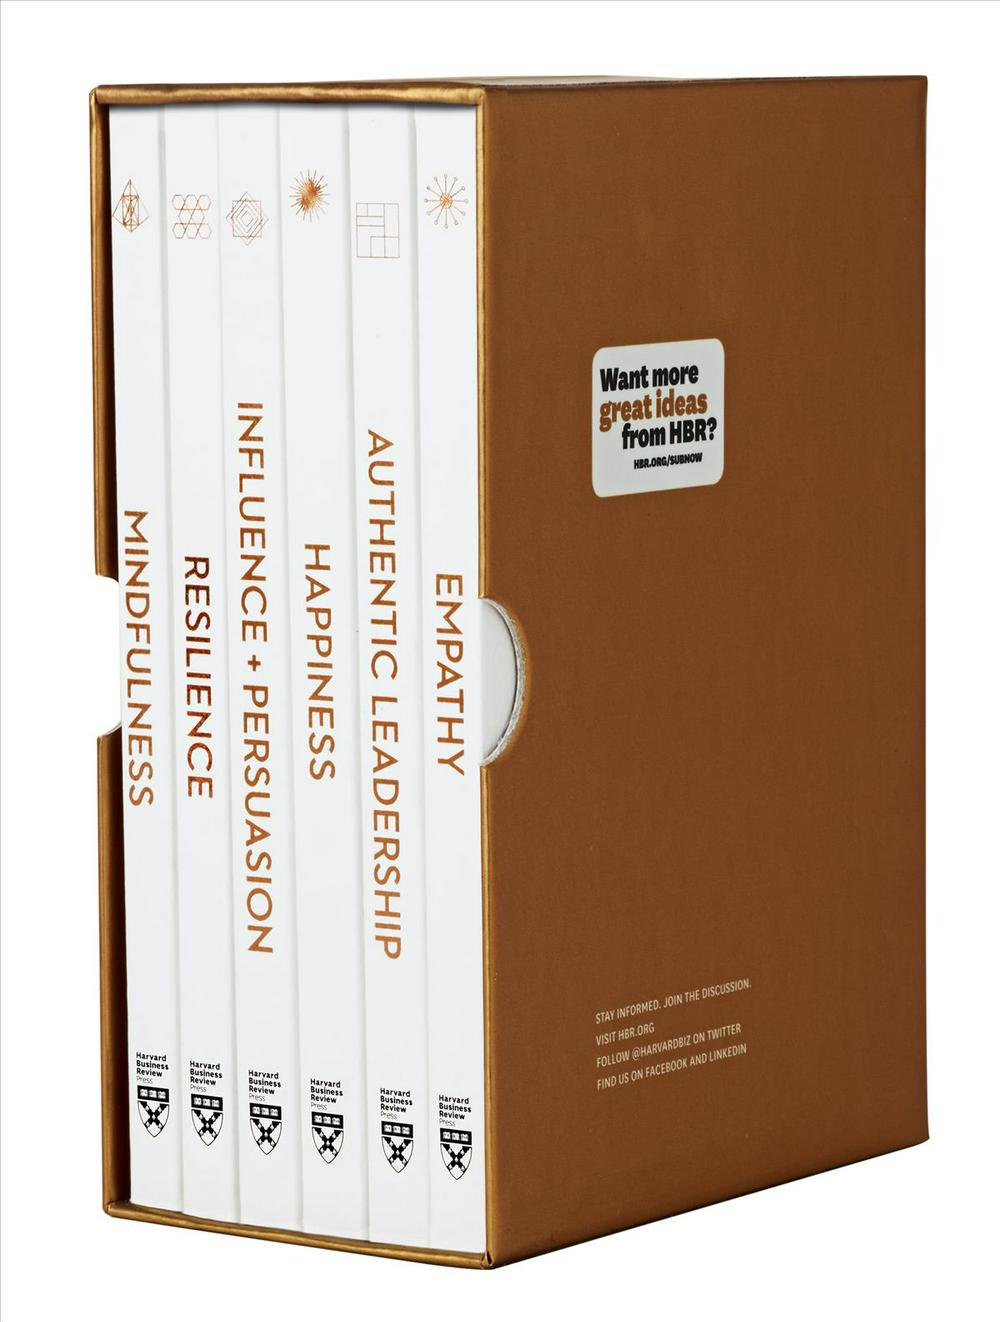 HBR Emotional Intelligence Boxed Set (6 Books (HBR Emotional Intelligence Series)HBR Emotional Intelligence